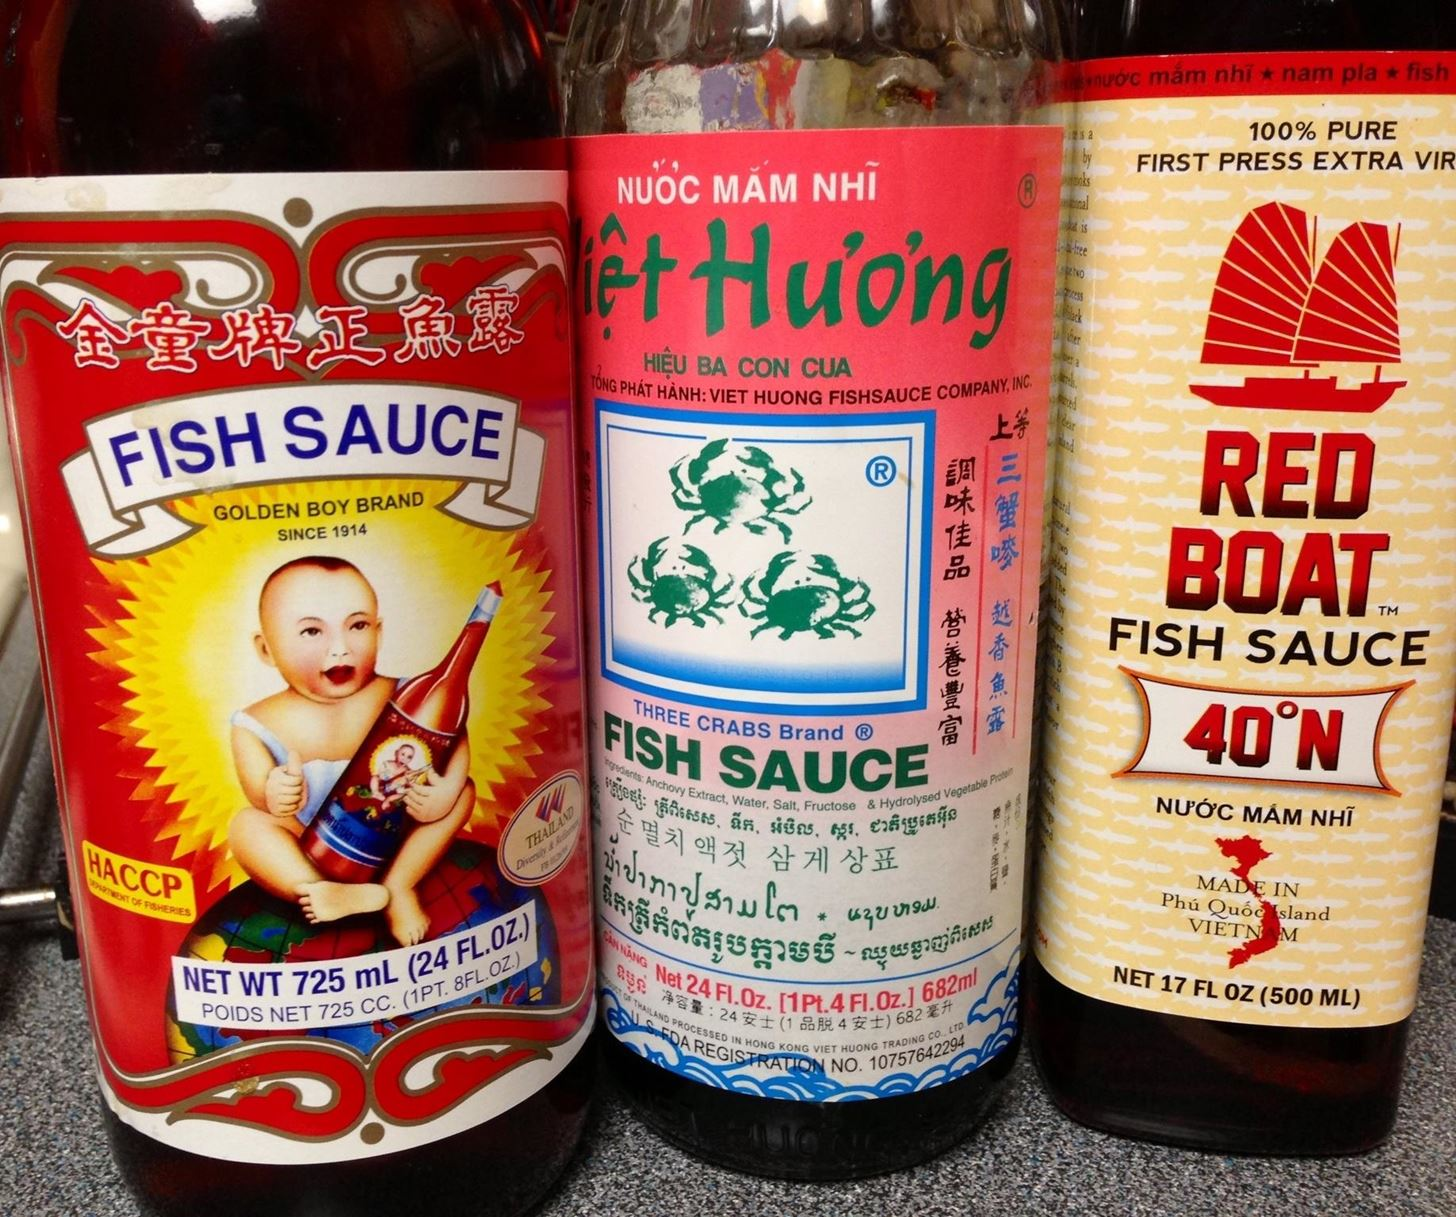 Fish Sauce—The Ultimate Umami Bomb